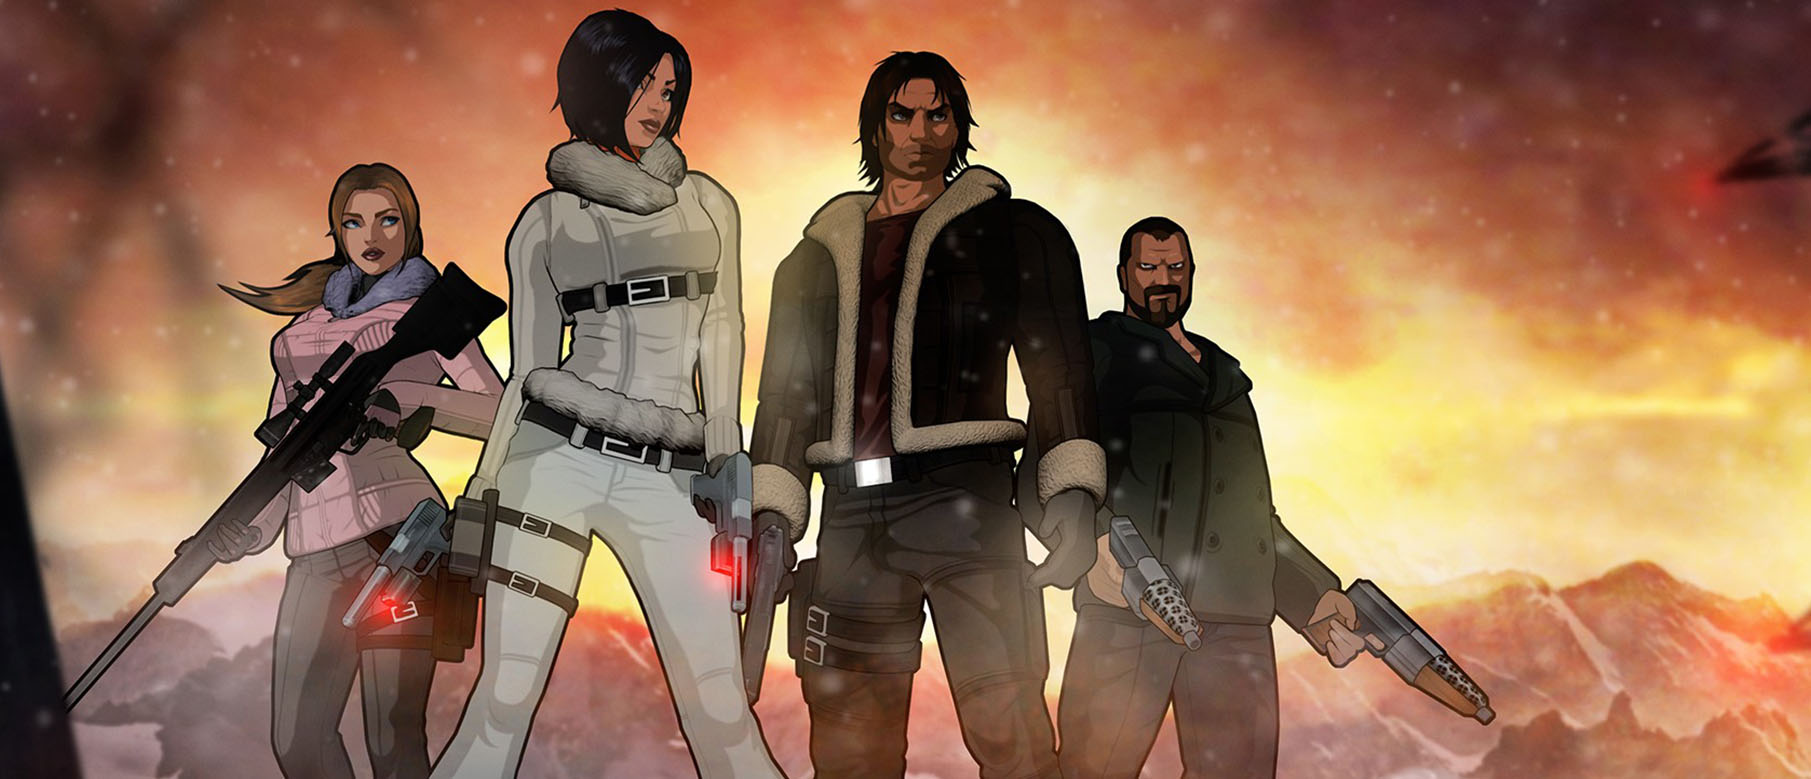 Первый геймплей Fear Effect Sedna из альфа-версии